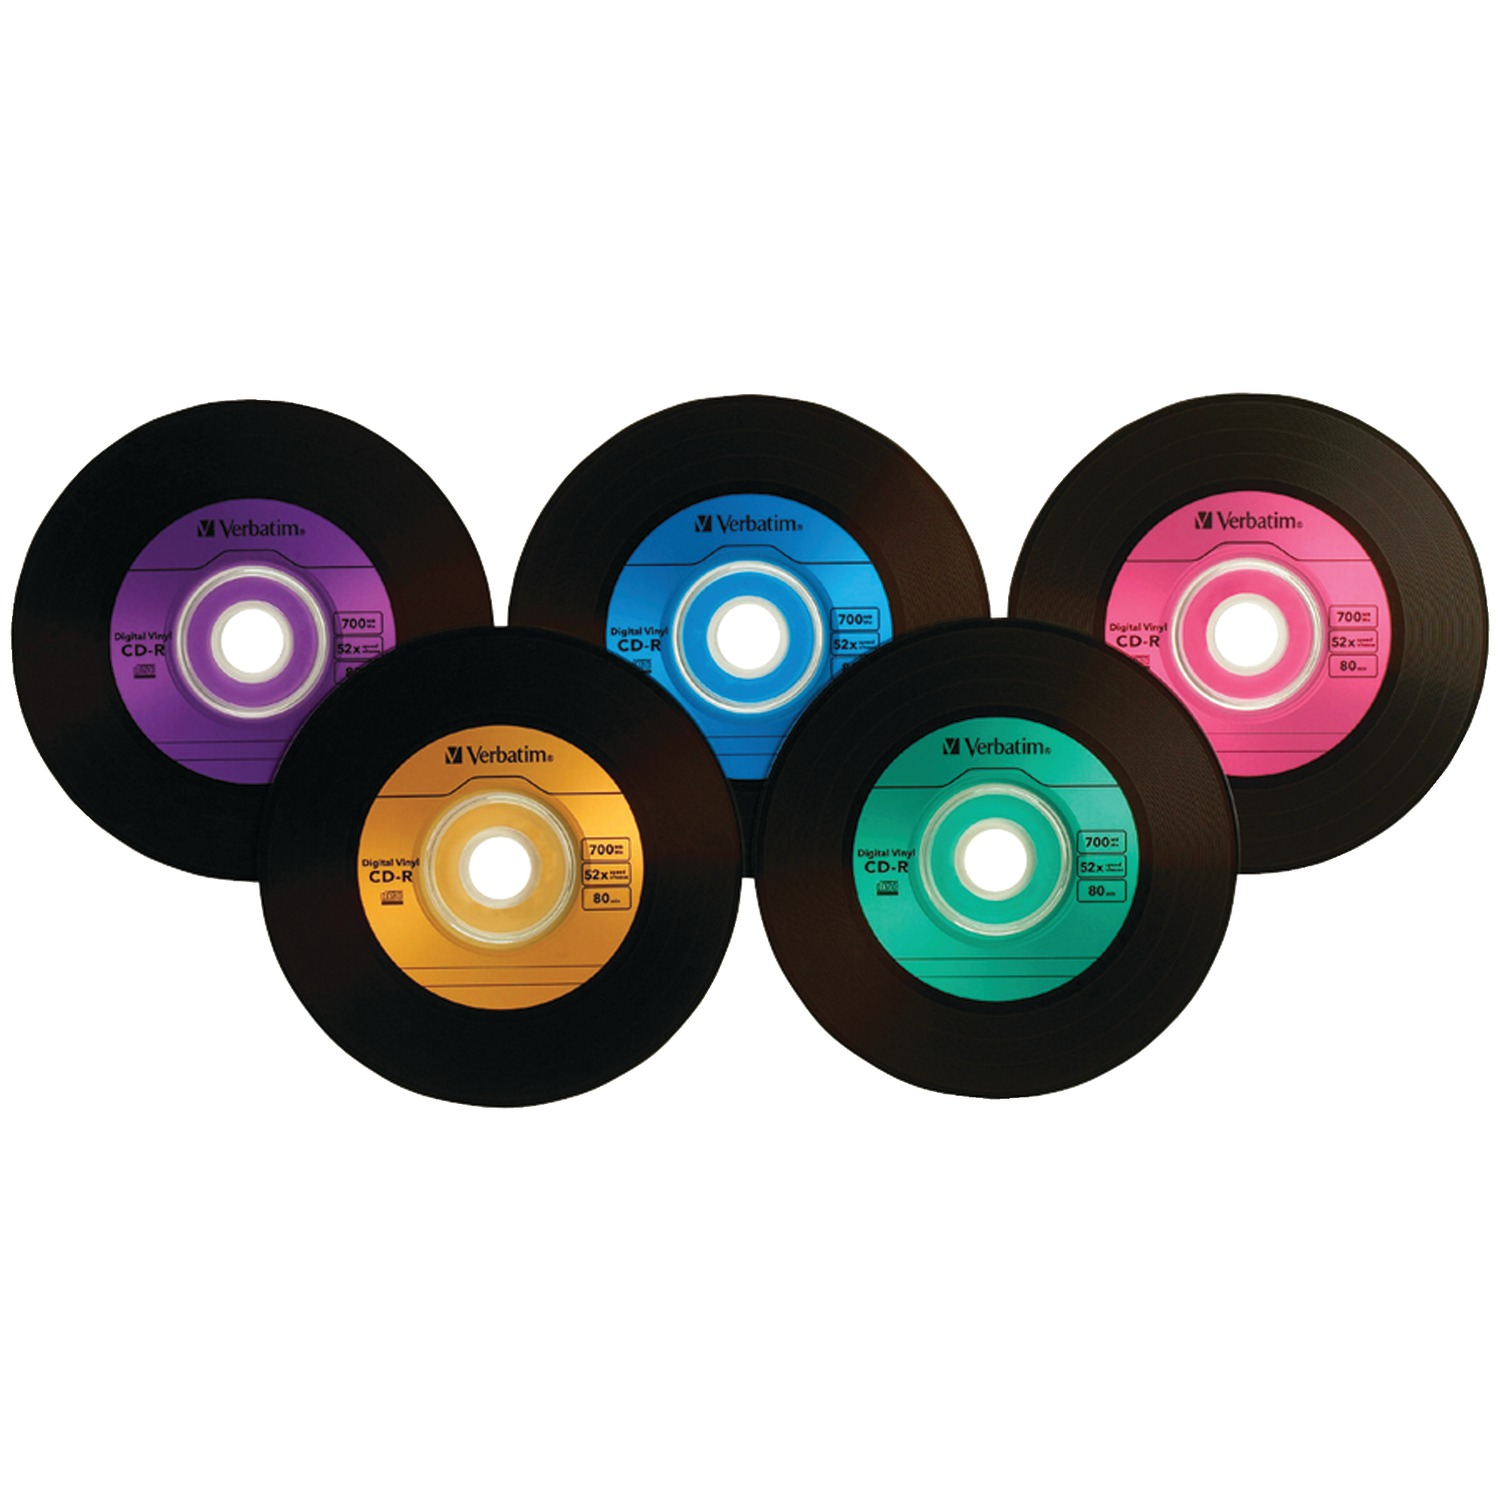 Verbatim 94587 700mb 80-minute 52X Digital Vinyl CD-RS, 50-ct Spindle